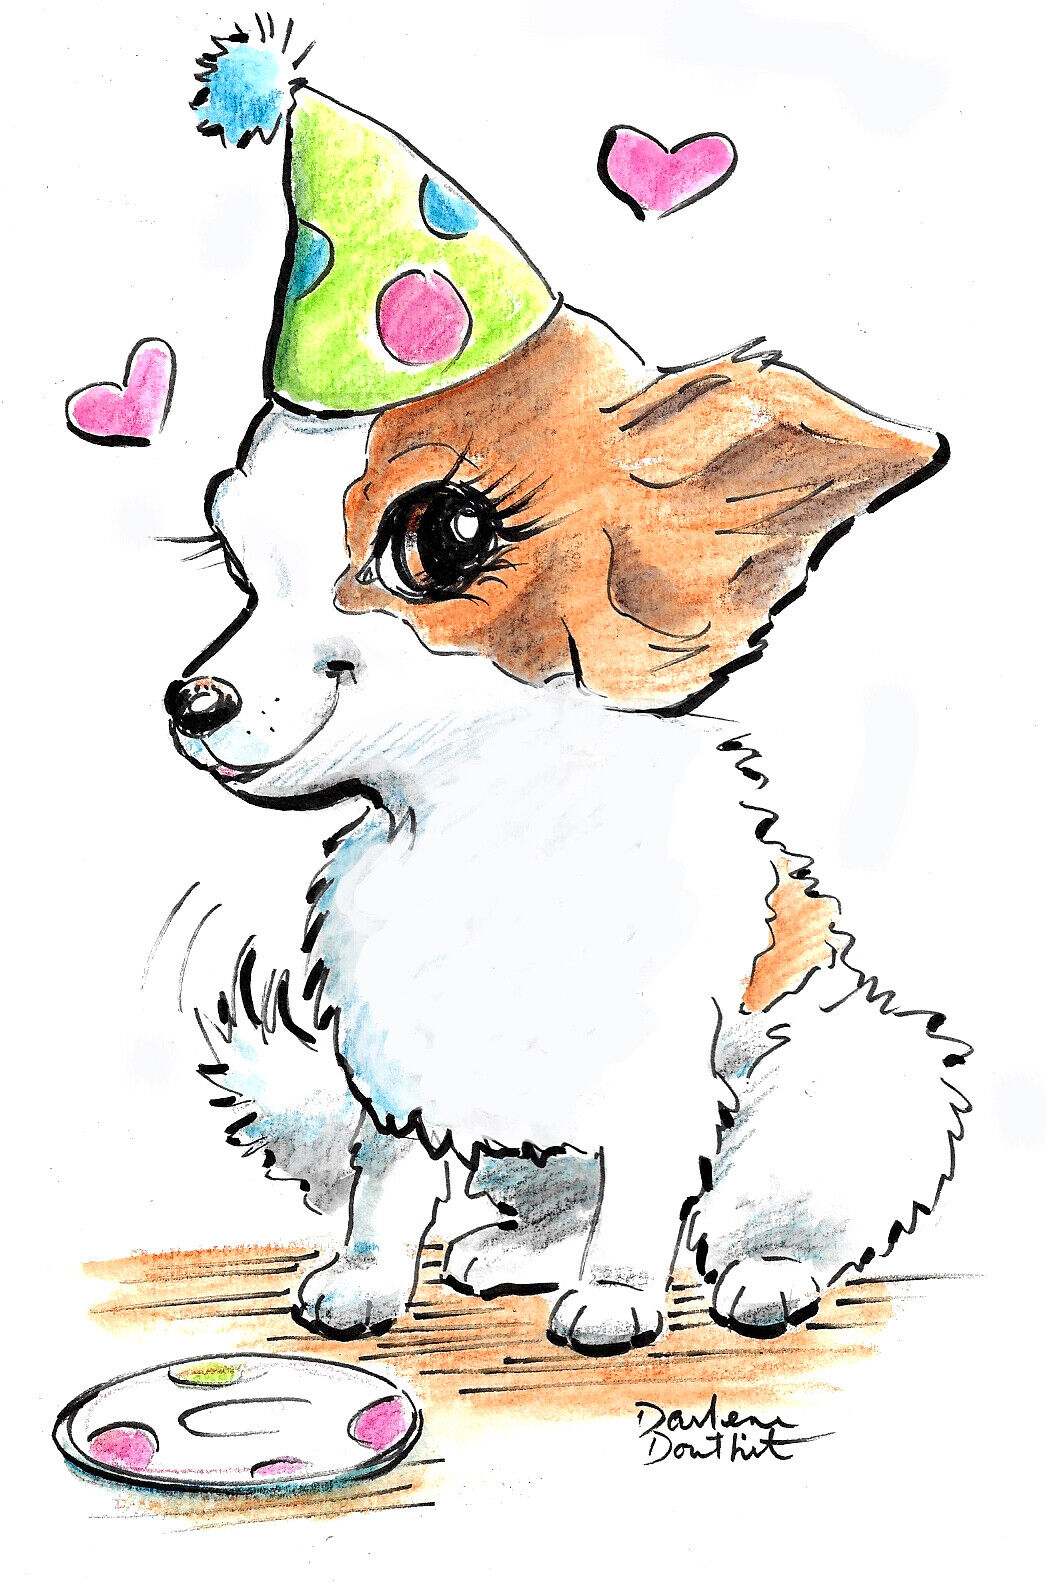 REDUCED SALE Caricature Pet Body From Your Photo You Print Digital Download  - $20.95